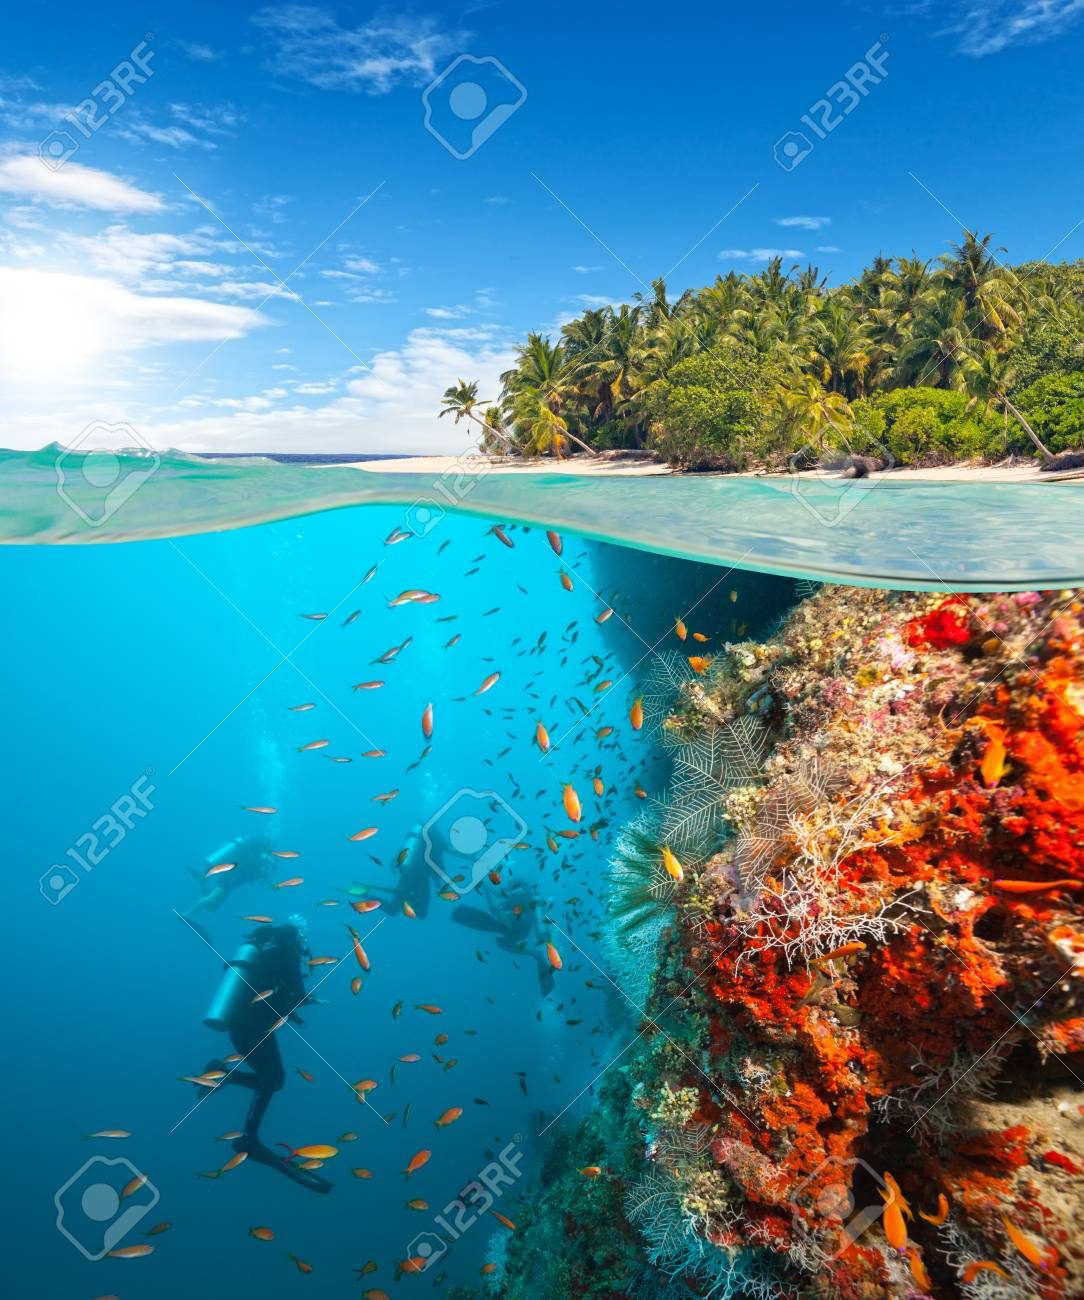 Group of scuba divers exploring coral reef. Underwater sports and tropical vacation template - 72123264